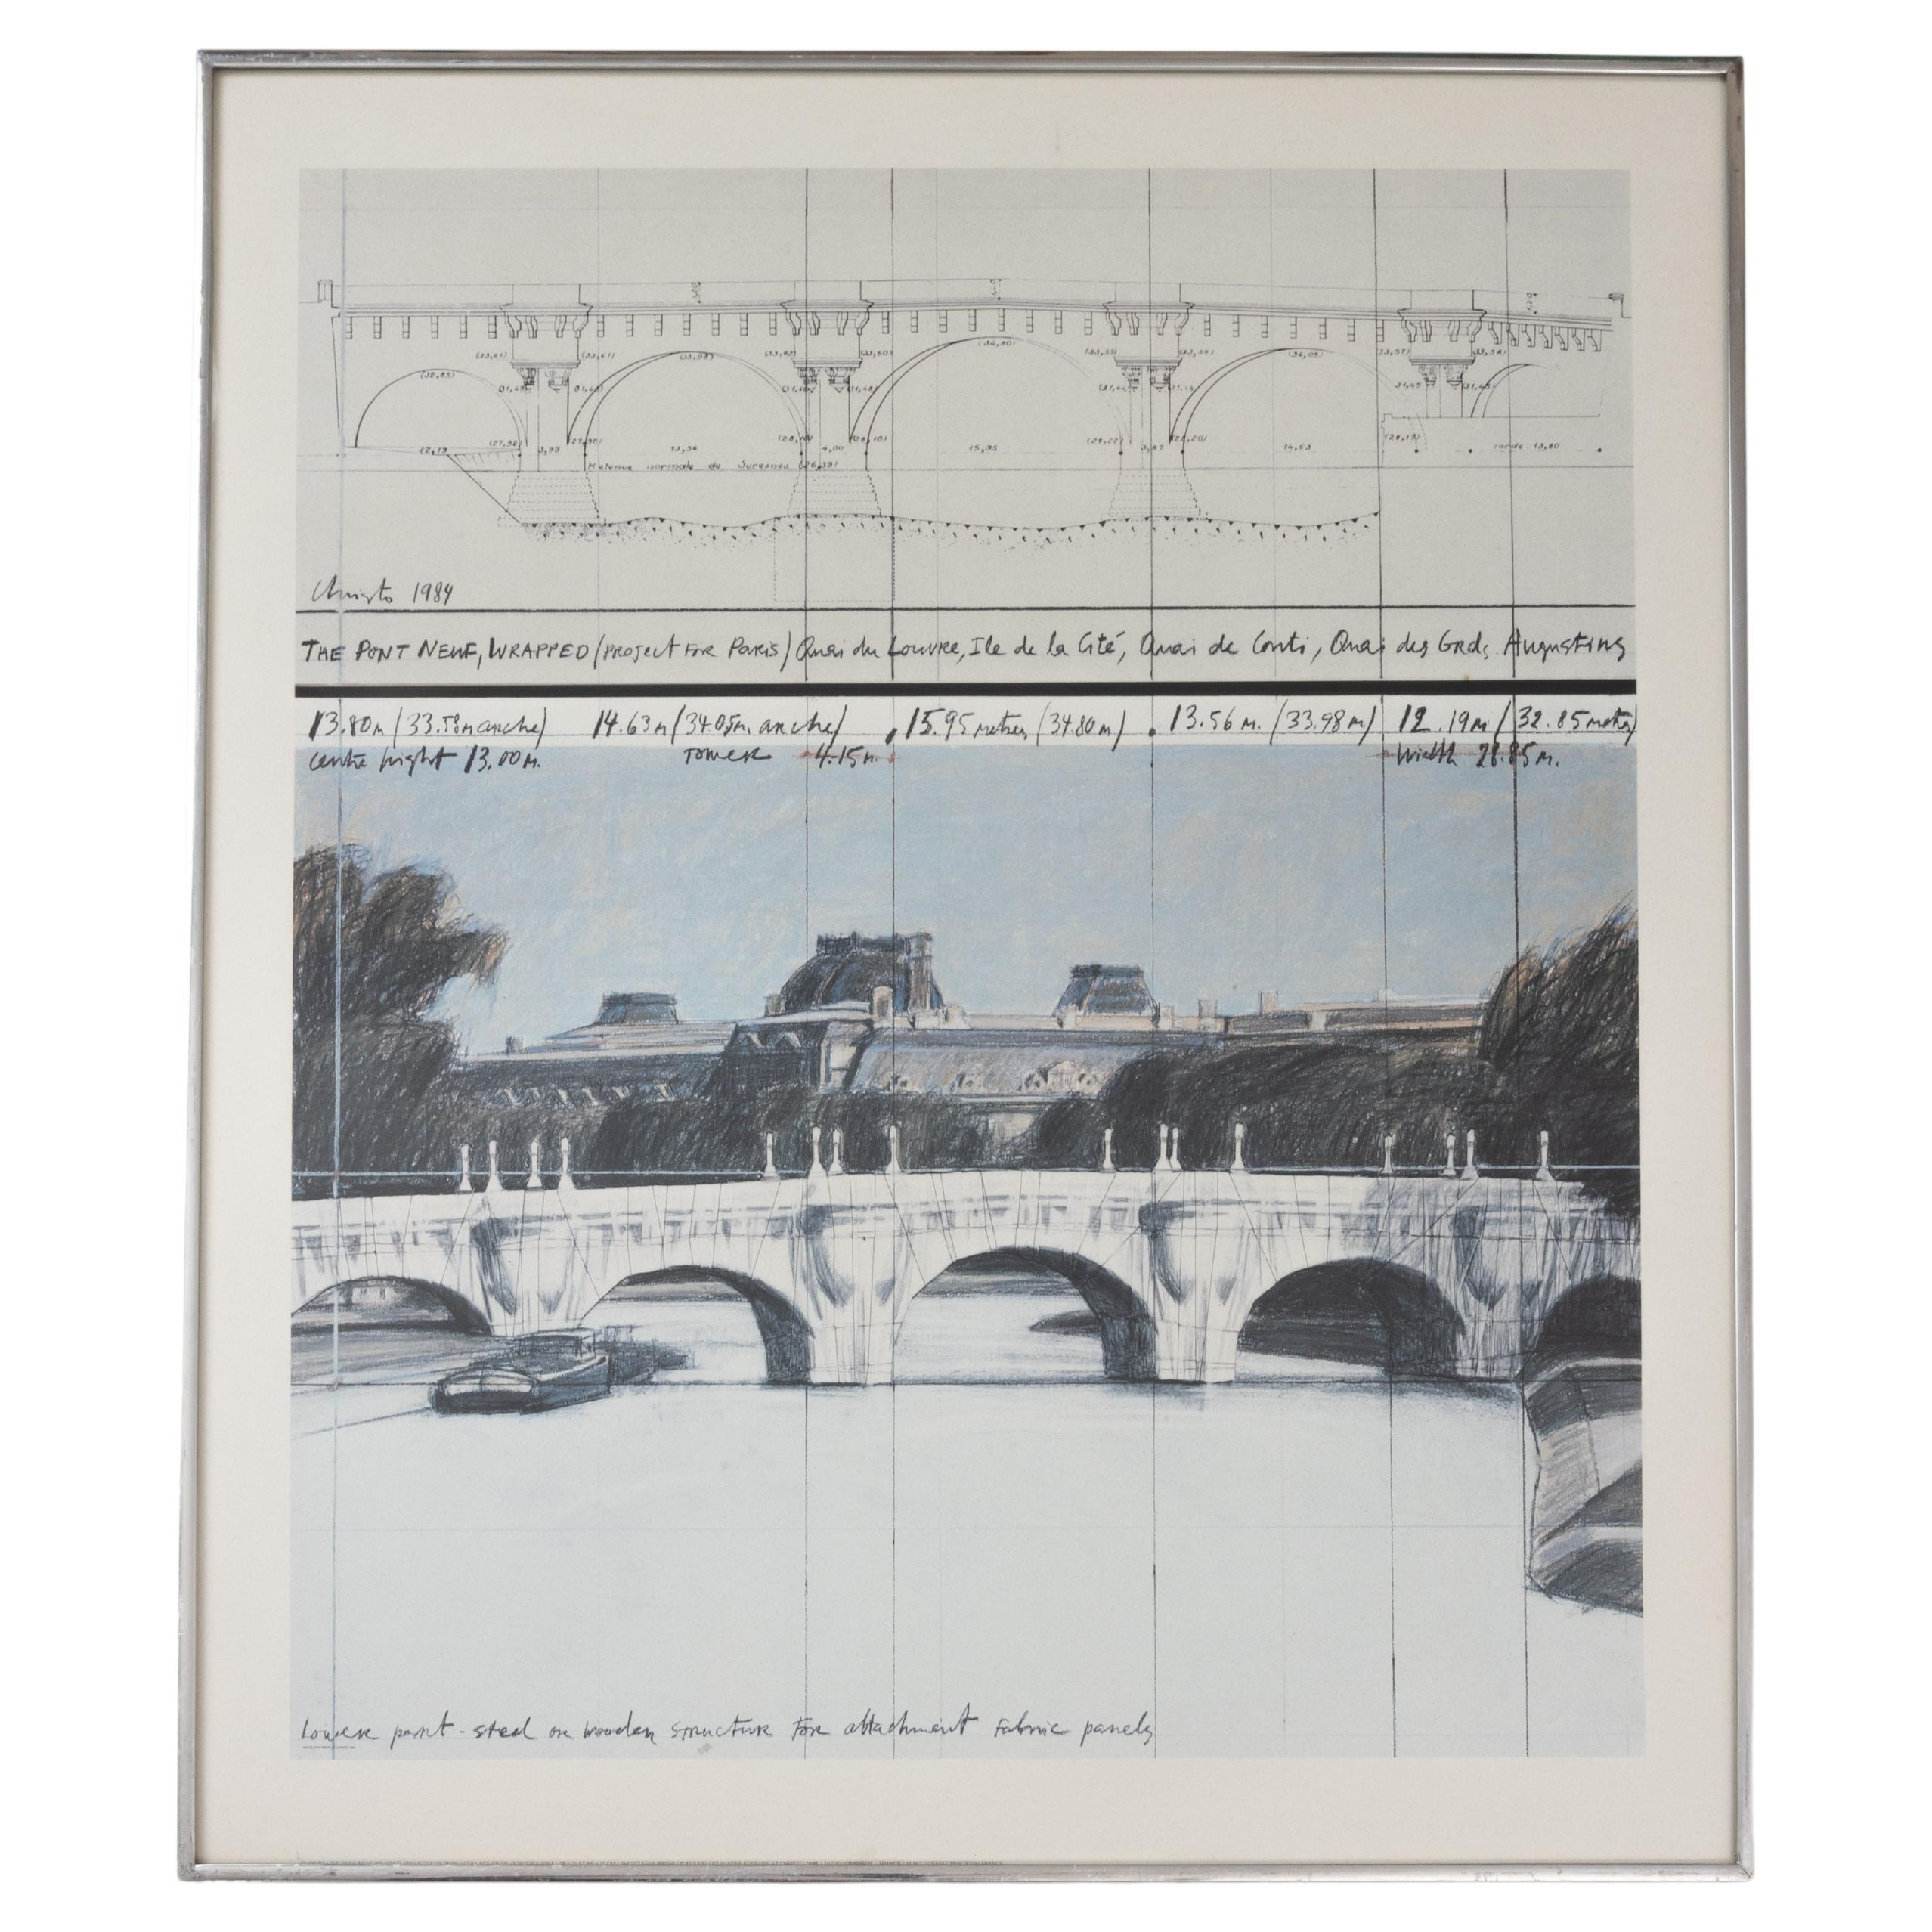 Christo / The Pont Neuf Wrapped / Project For Paris, 1984 Lithograph